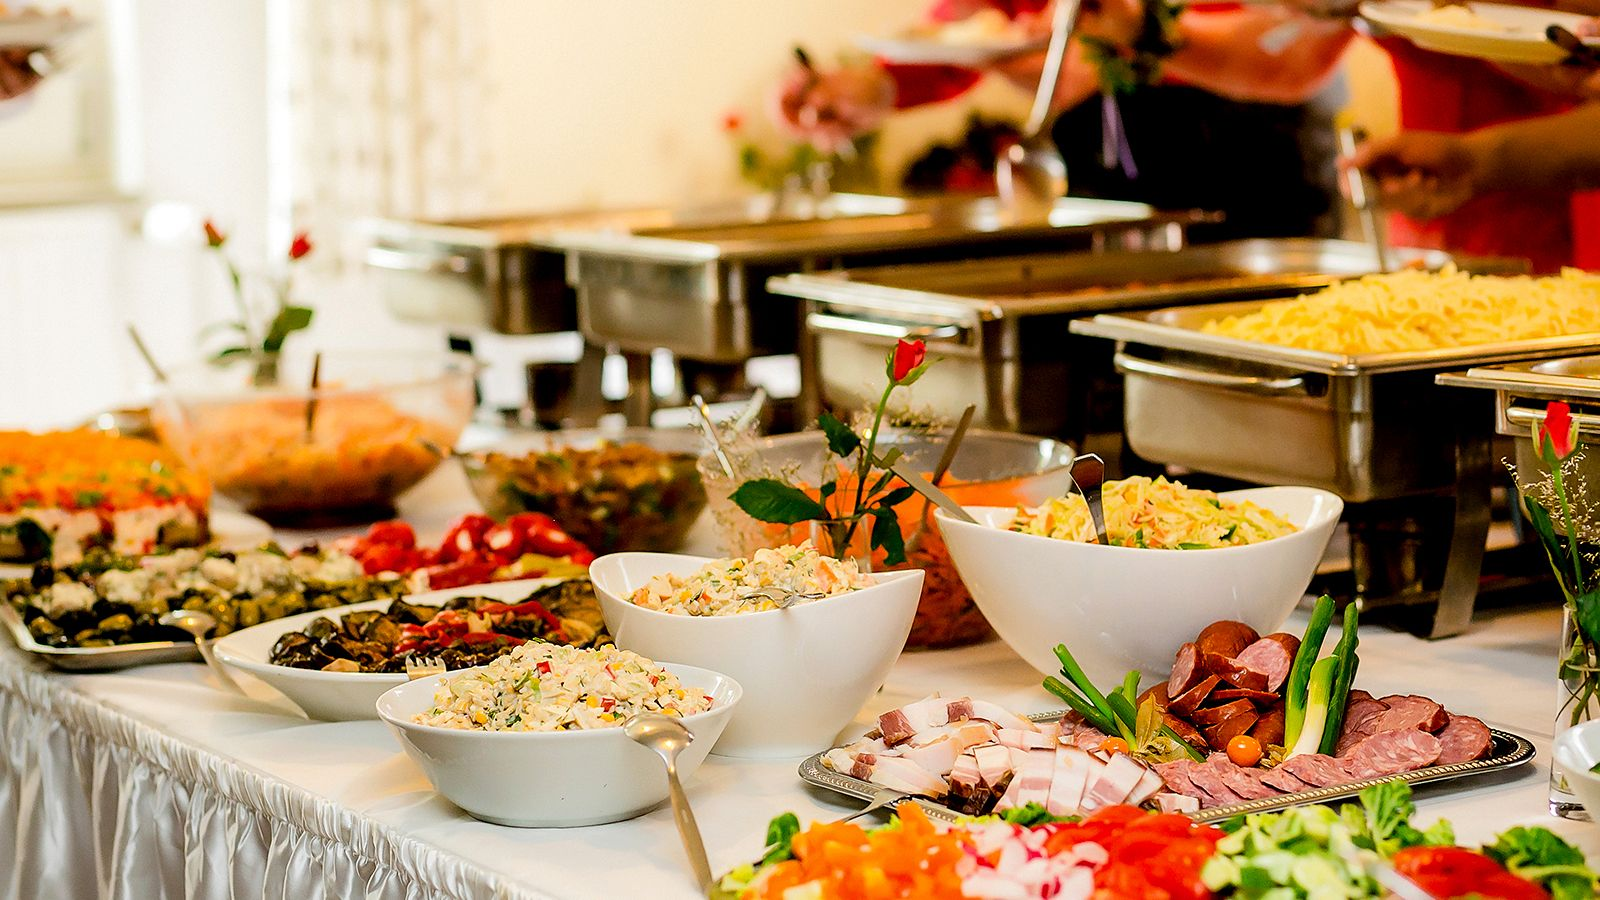 All About The Party Catering Sydney